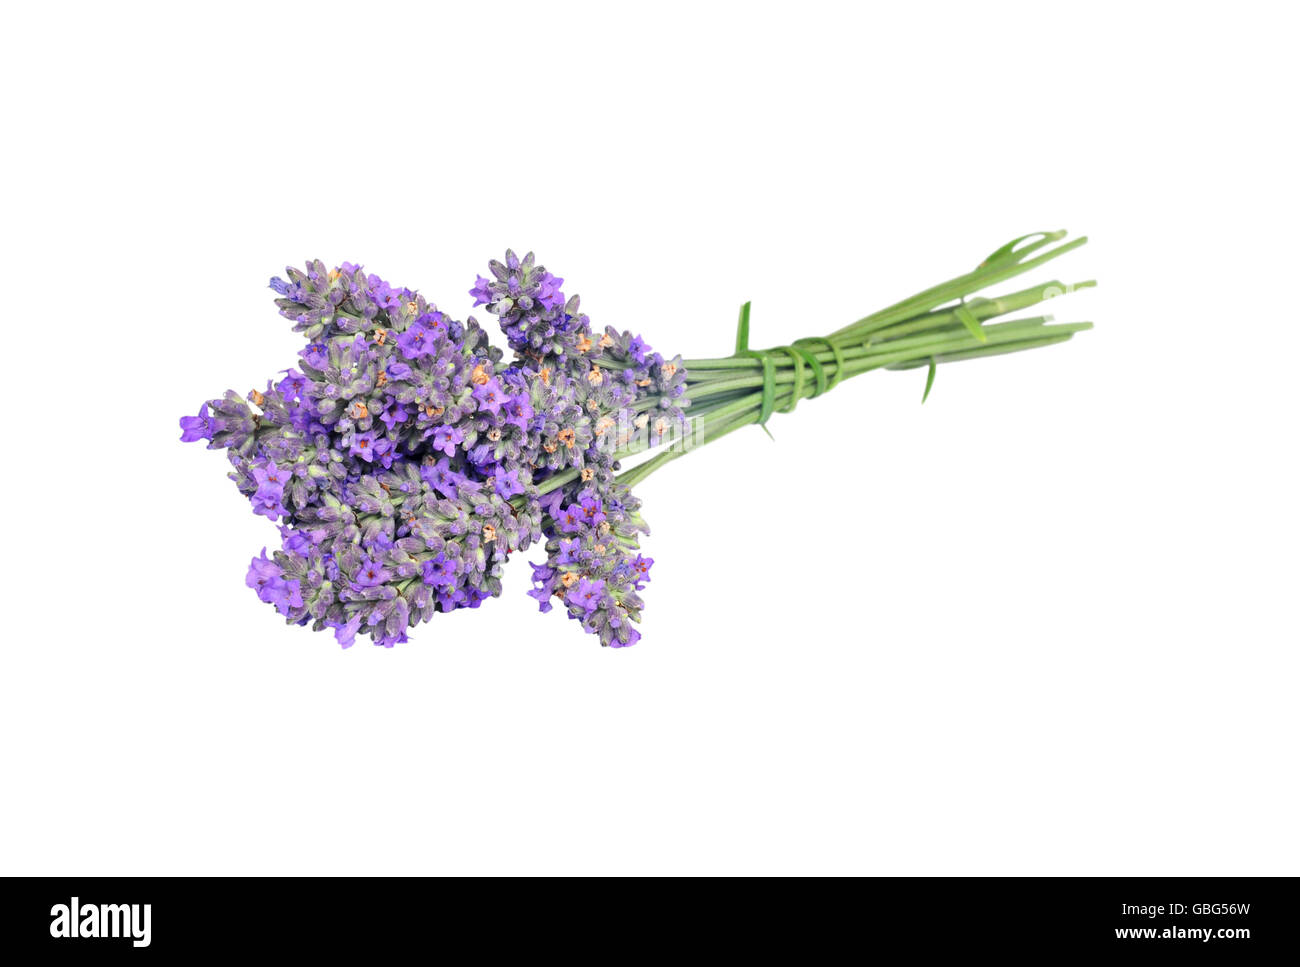 Bouquet of lavender isolated on white background - Stock Image